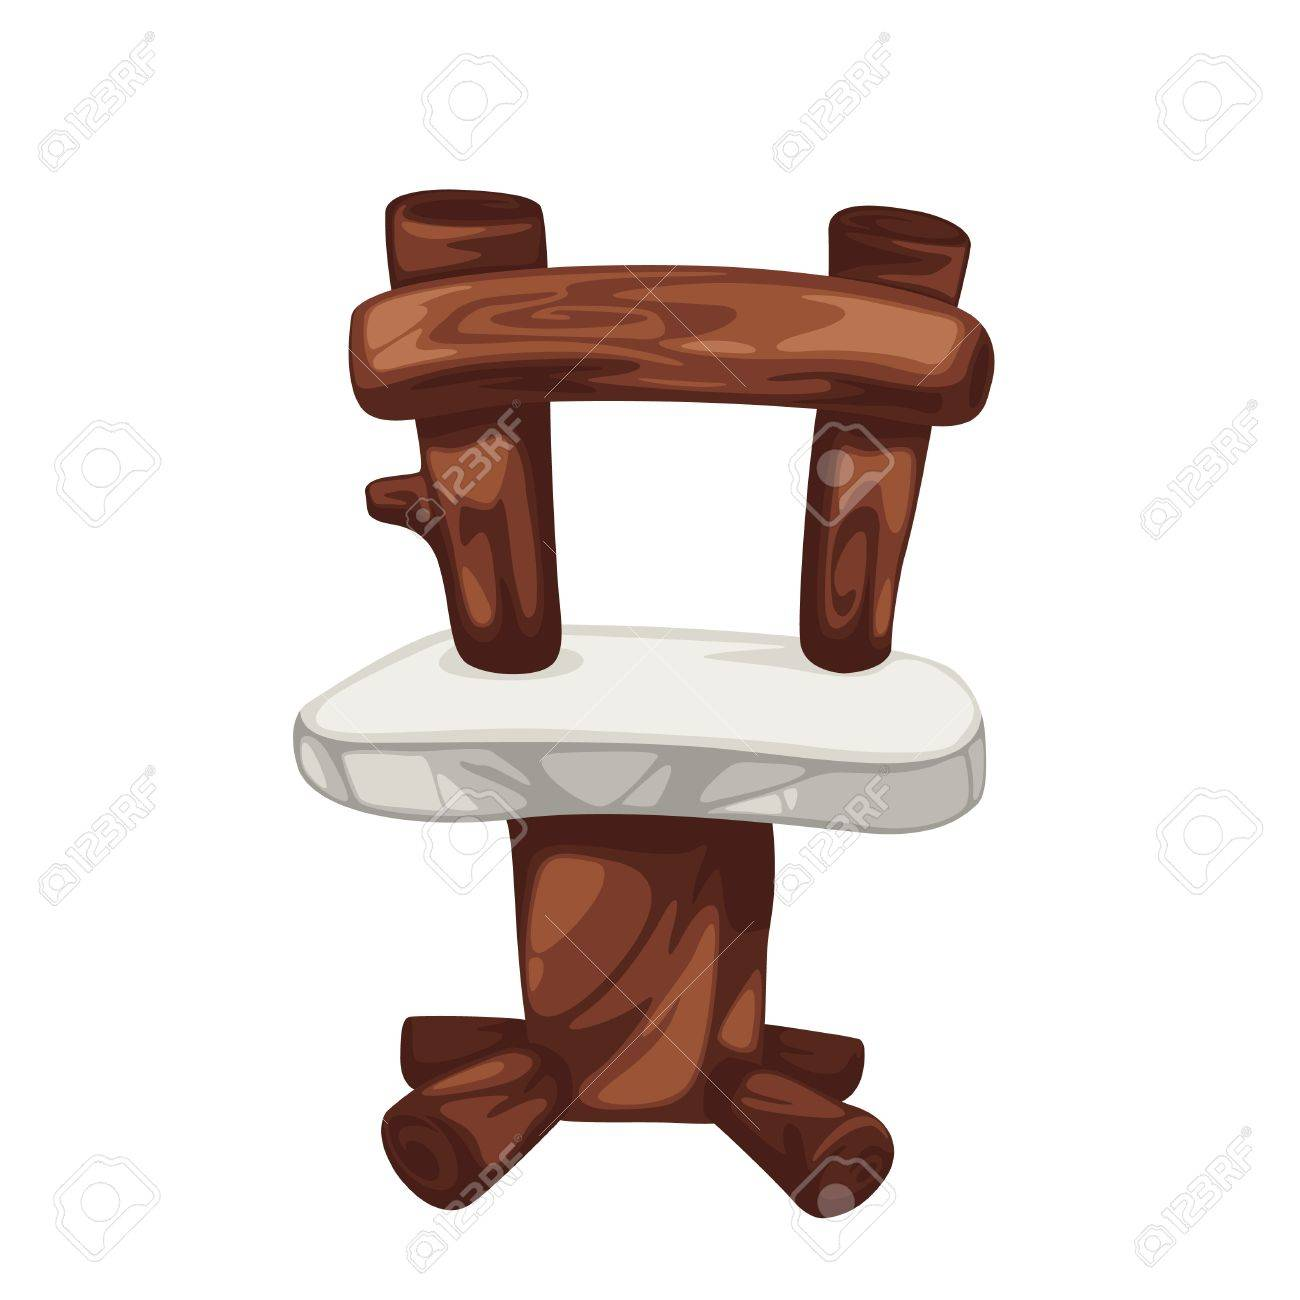 wood chair prehistoric isolated of illustration Stock Vector - 13509794